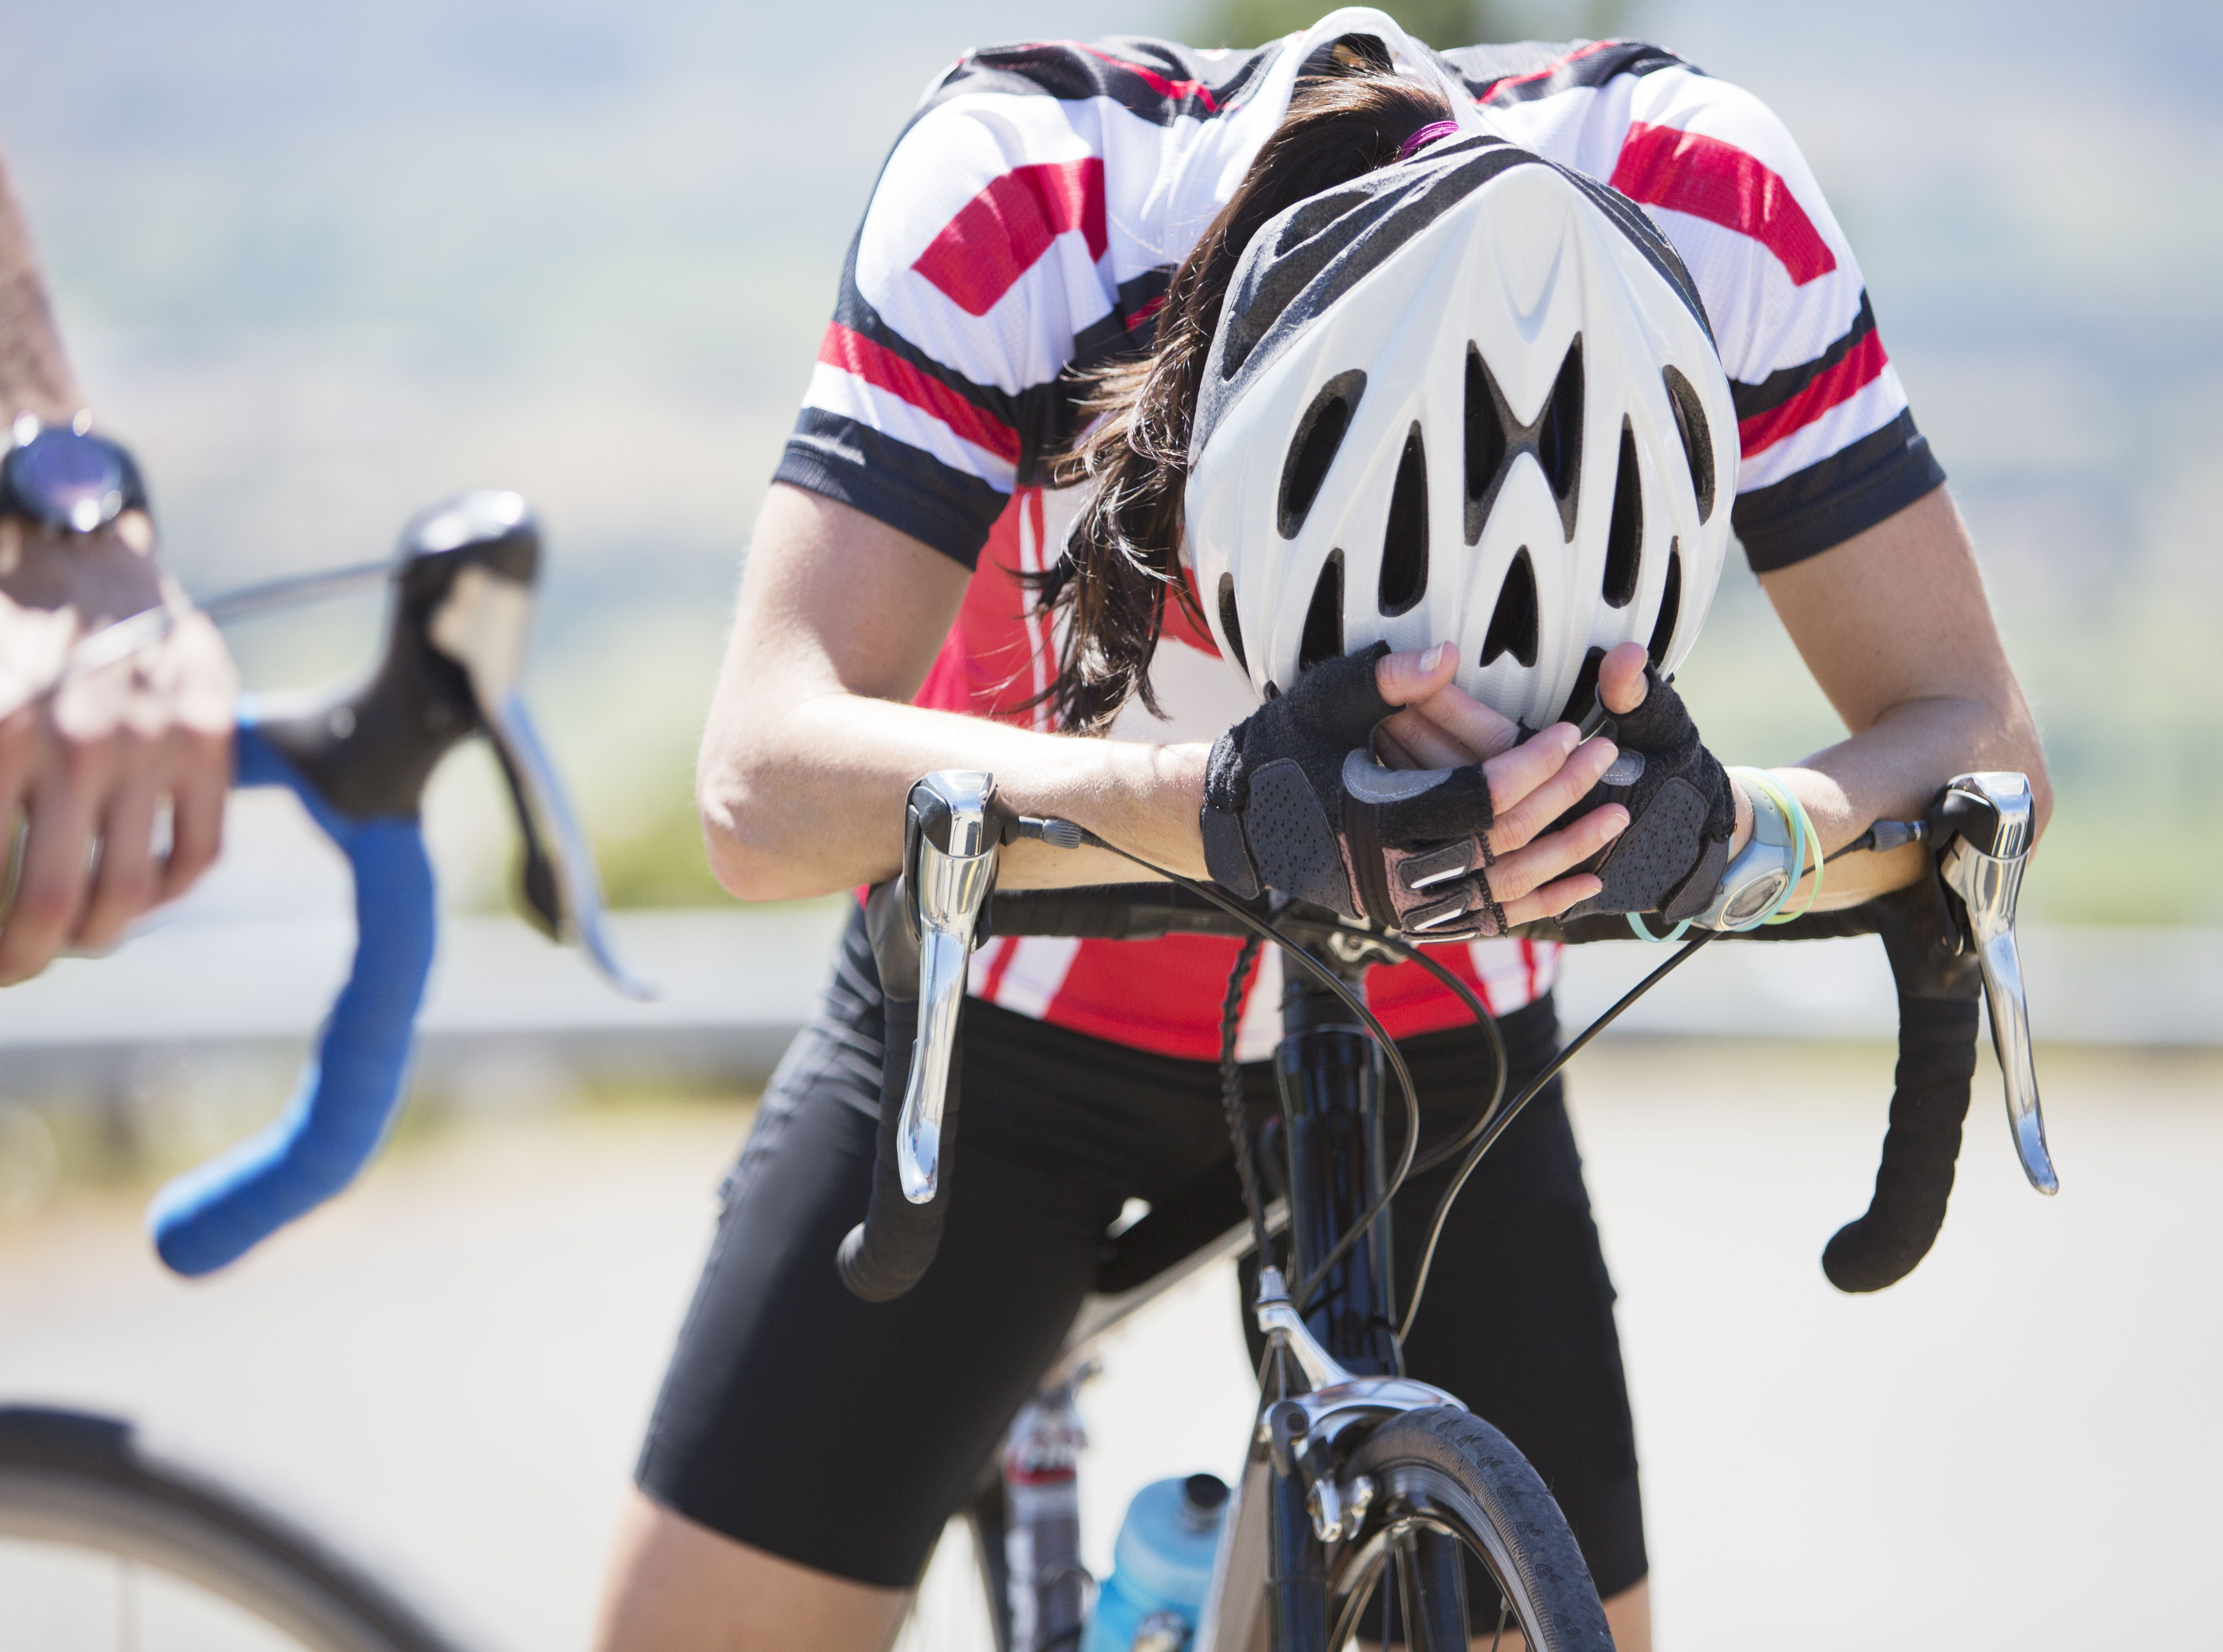 Can You Prevent the Bonk During Exercise